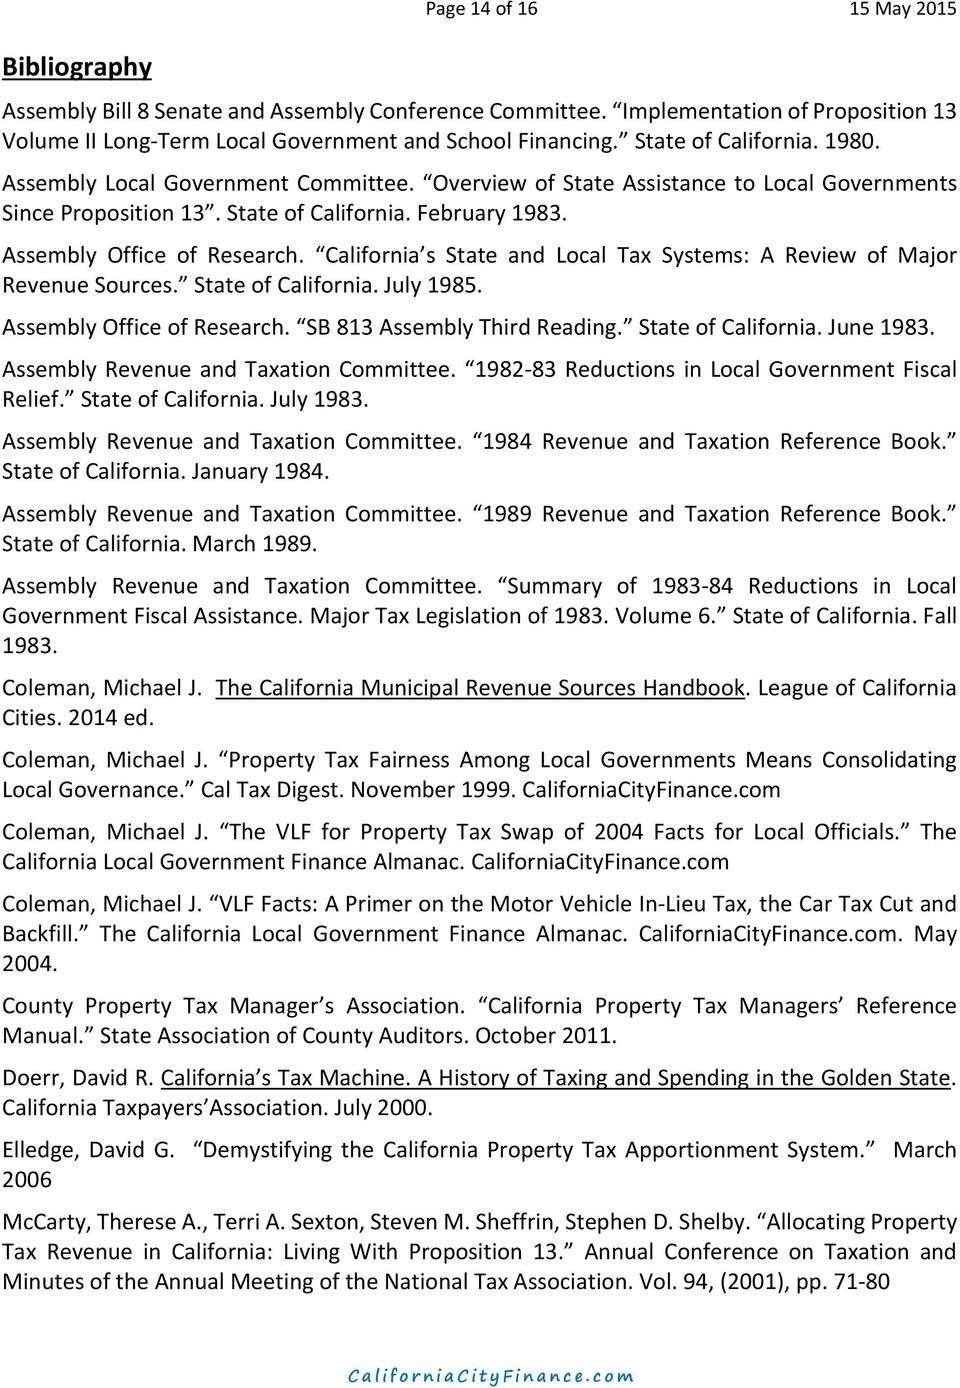 California s State and Local Tax Systems: A Review of Major Revenue Sources. State of California. July 1985. Assembly Office of Research. SB 813 Assembly Third Reading. State of California. June 1983.